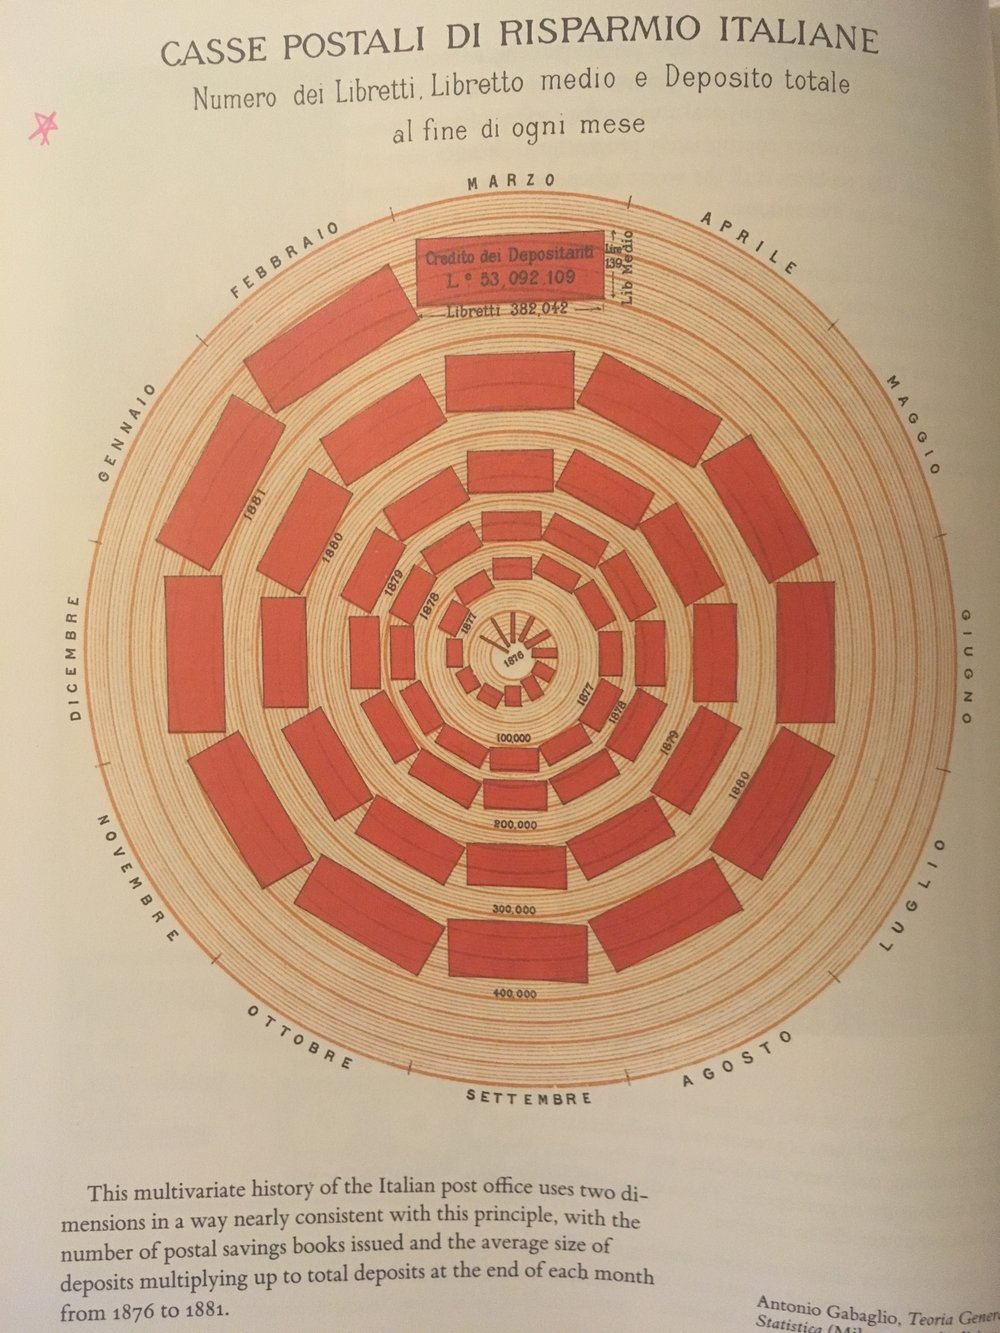 Figure 2 - I loved this depiction of the history of the growth of the Italian post office as shown through the number of postal savings books issued. I thought a circular shape was very affective in term of showing yearly patterns.